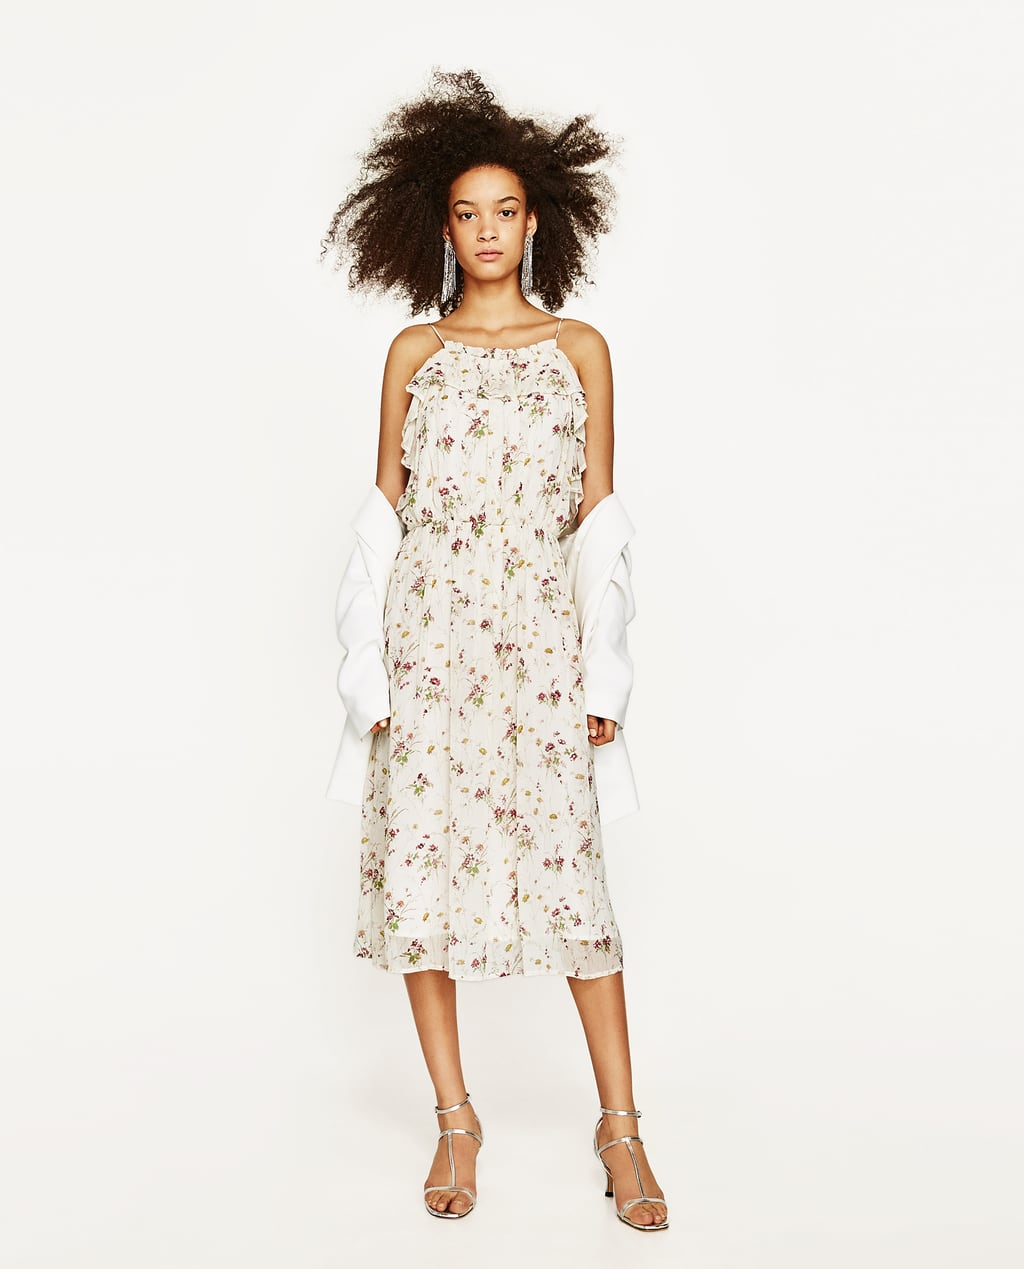 White dress at zara - Image 1 Of Floral Dress From Zara